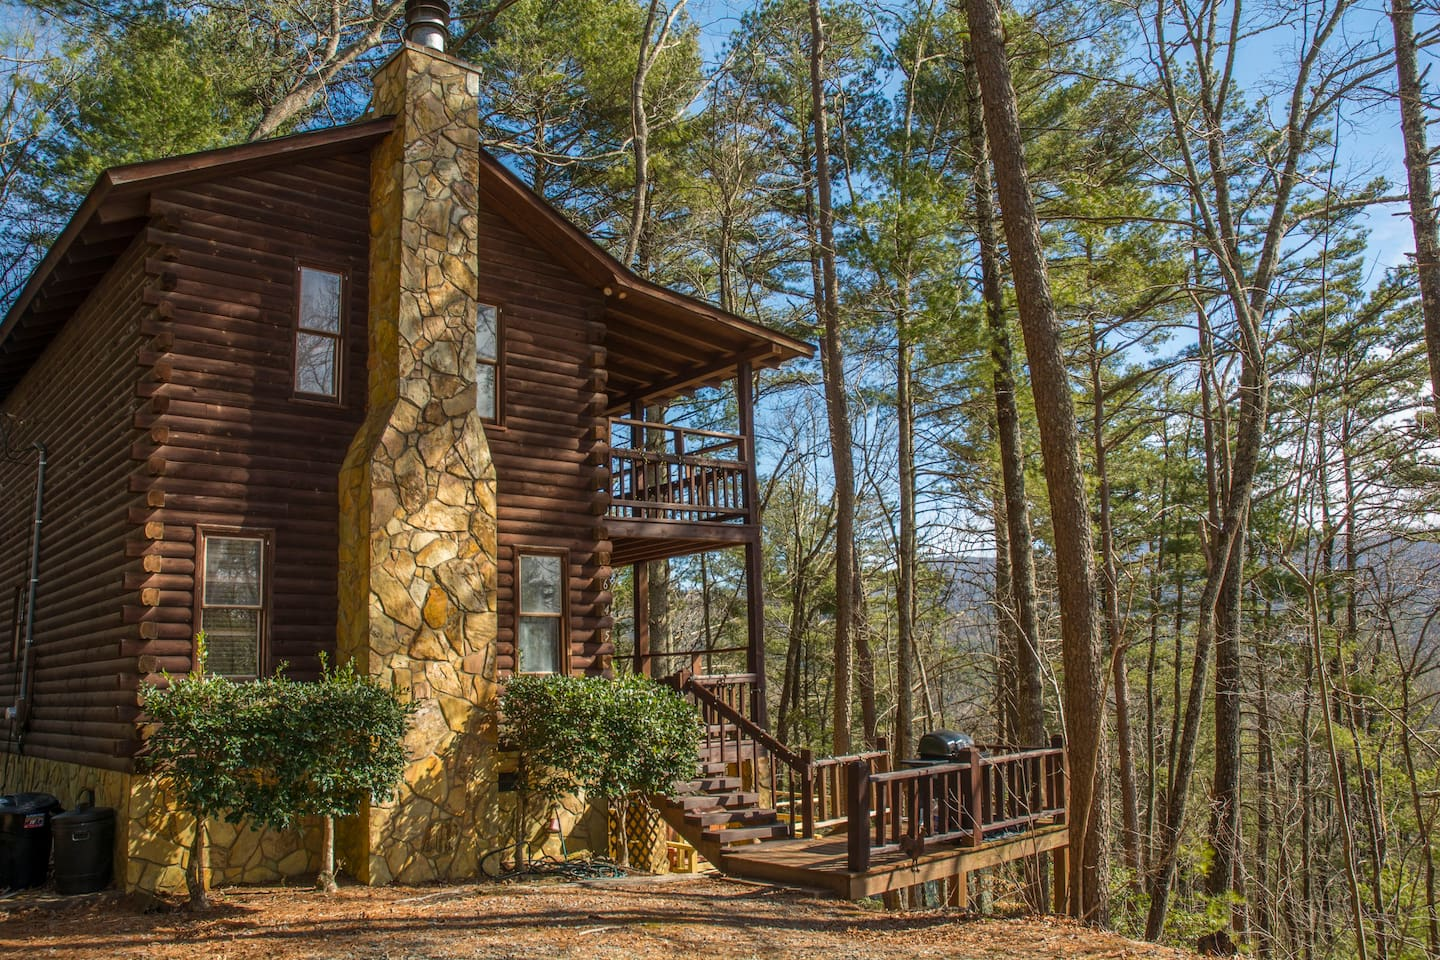 2 Story double-deck TRUE Log Home